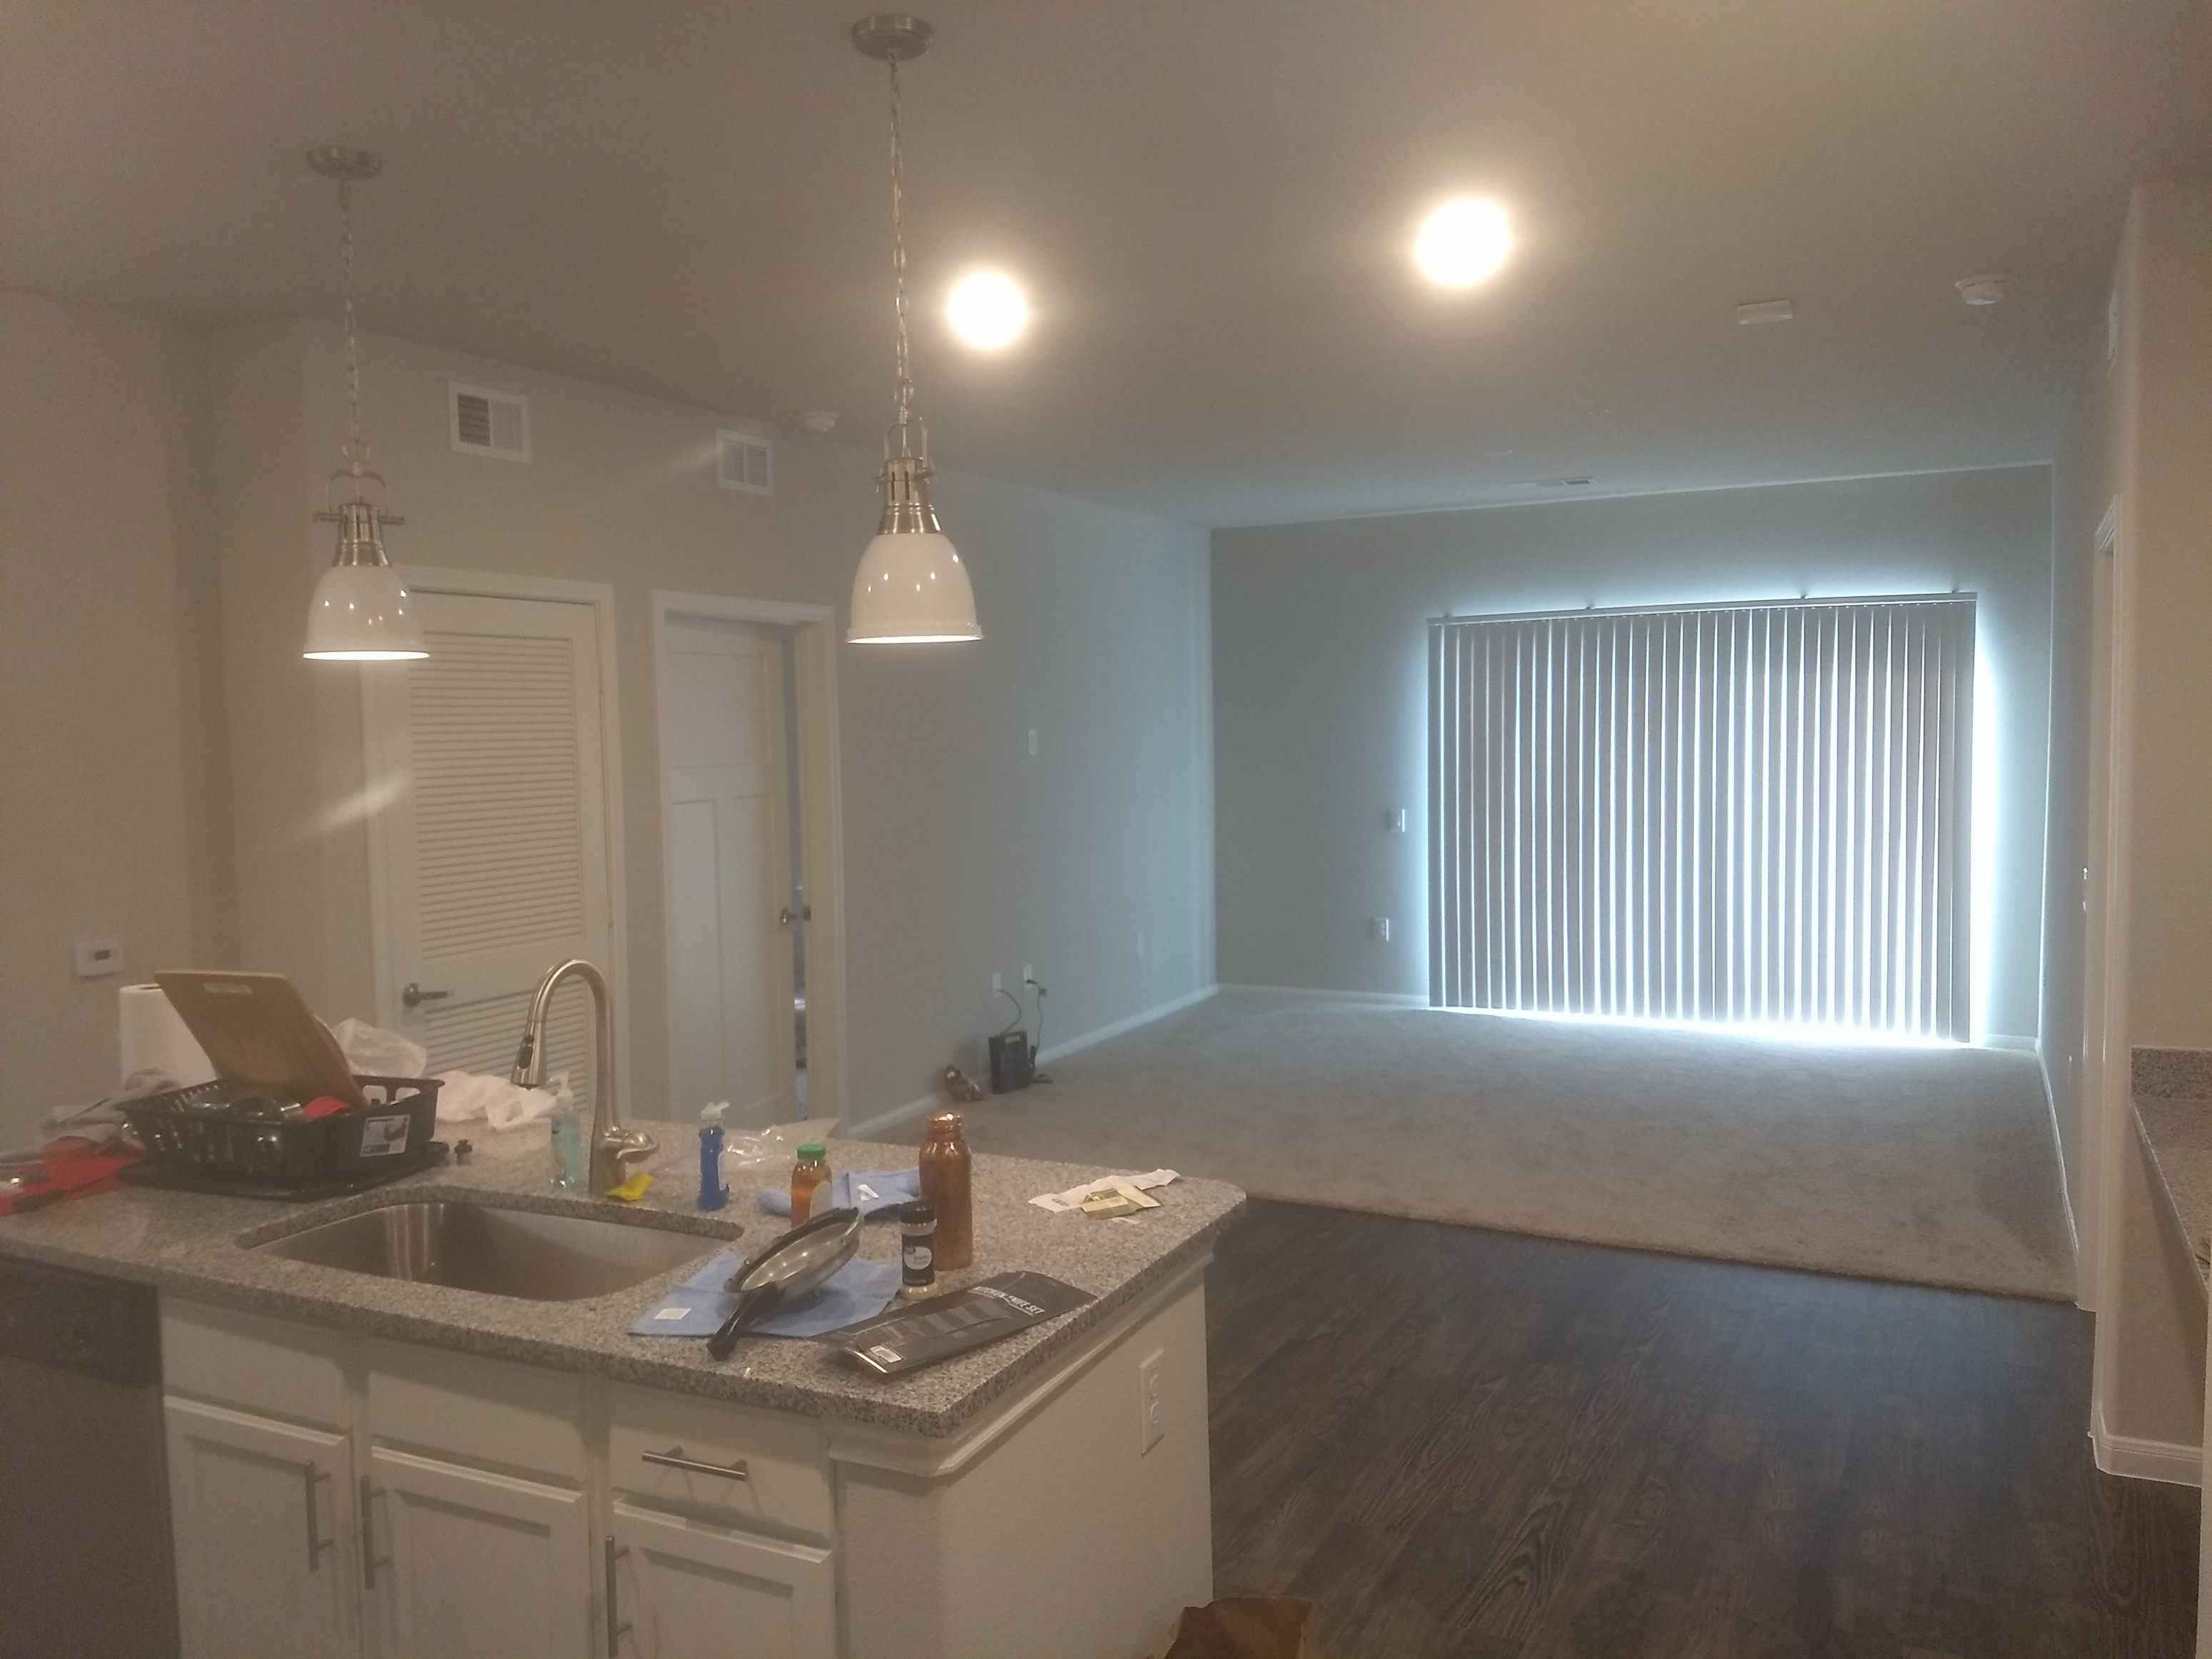 Single Room For Rent In 1200 Sq Ft Apt At Tech Ridge 10